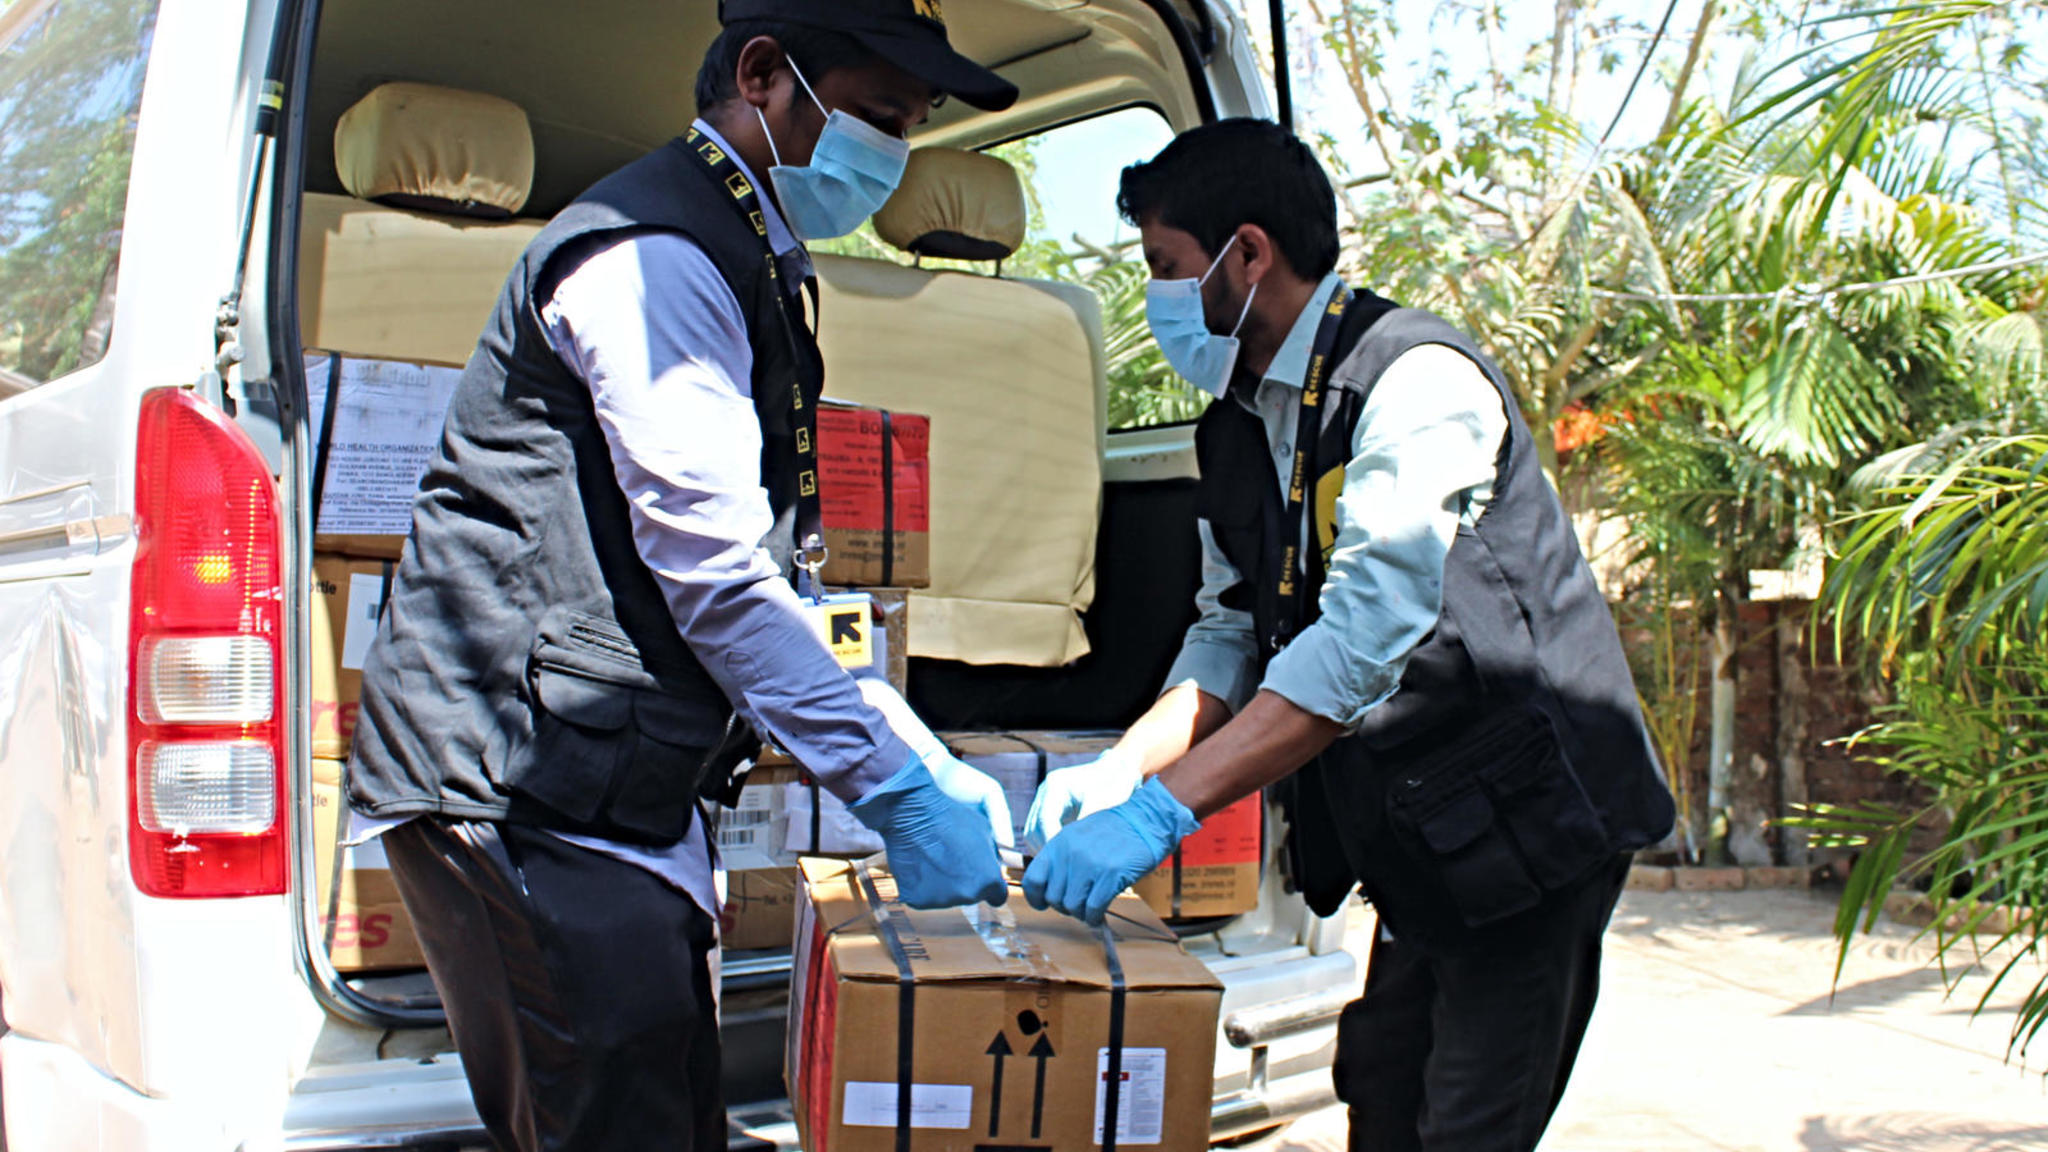 IRC staff unloads equipment as the IRC primary health care center in Cox's Bazar ramped up preparations for confronting the coronavirus pandemic.